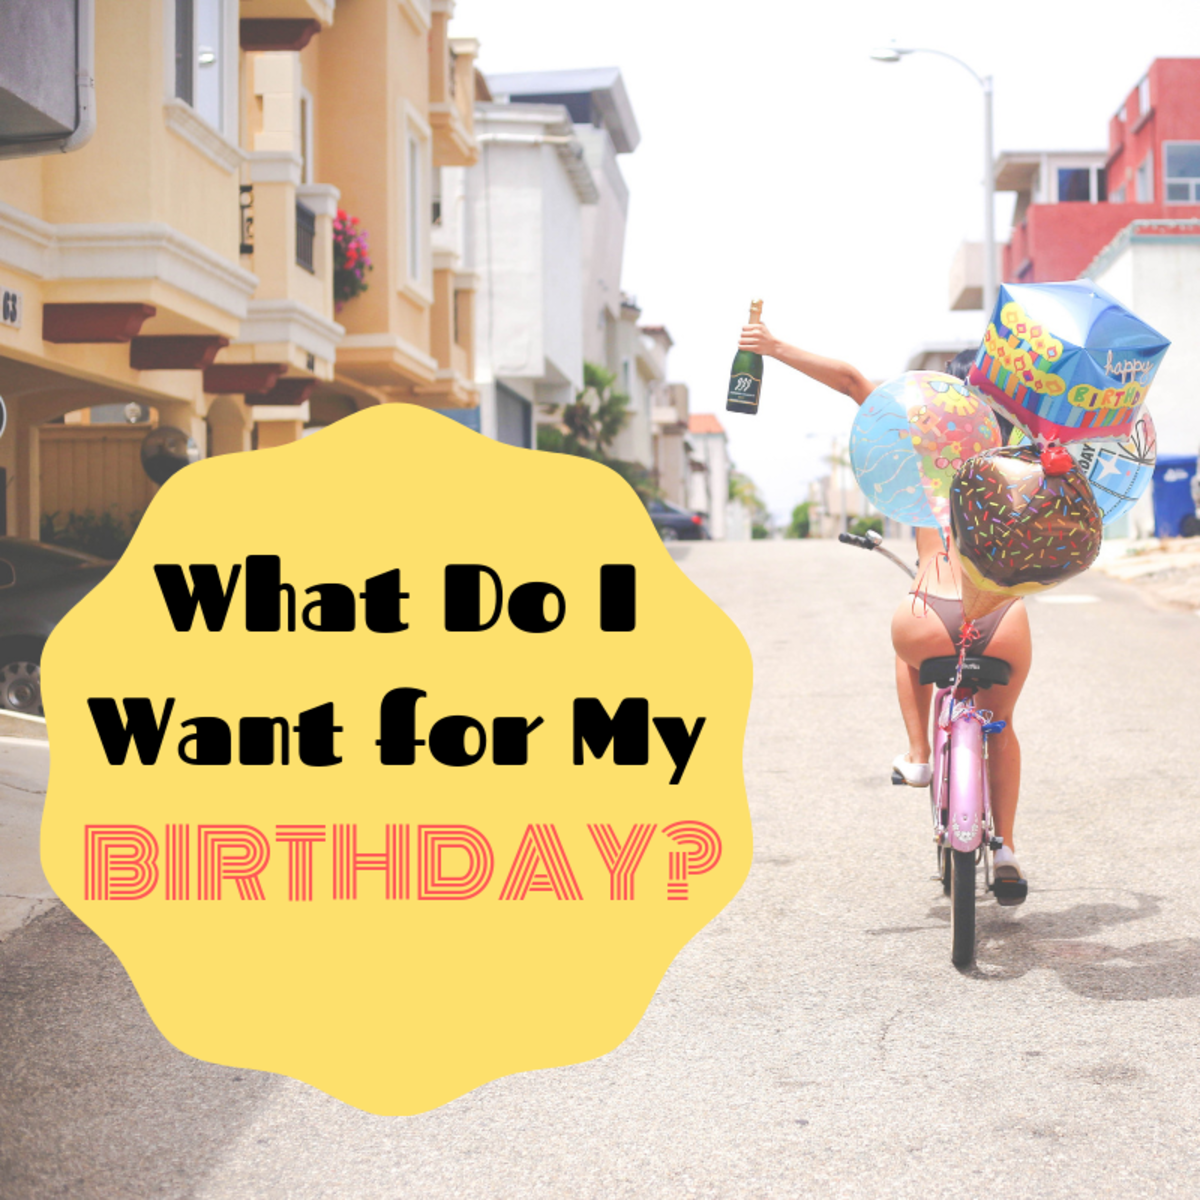 Help your friends and family save time by letting them know what you actually want for your birthday. You'll be glad you did!